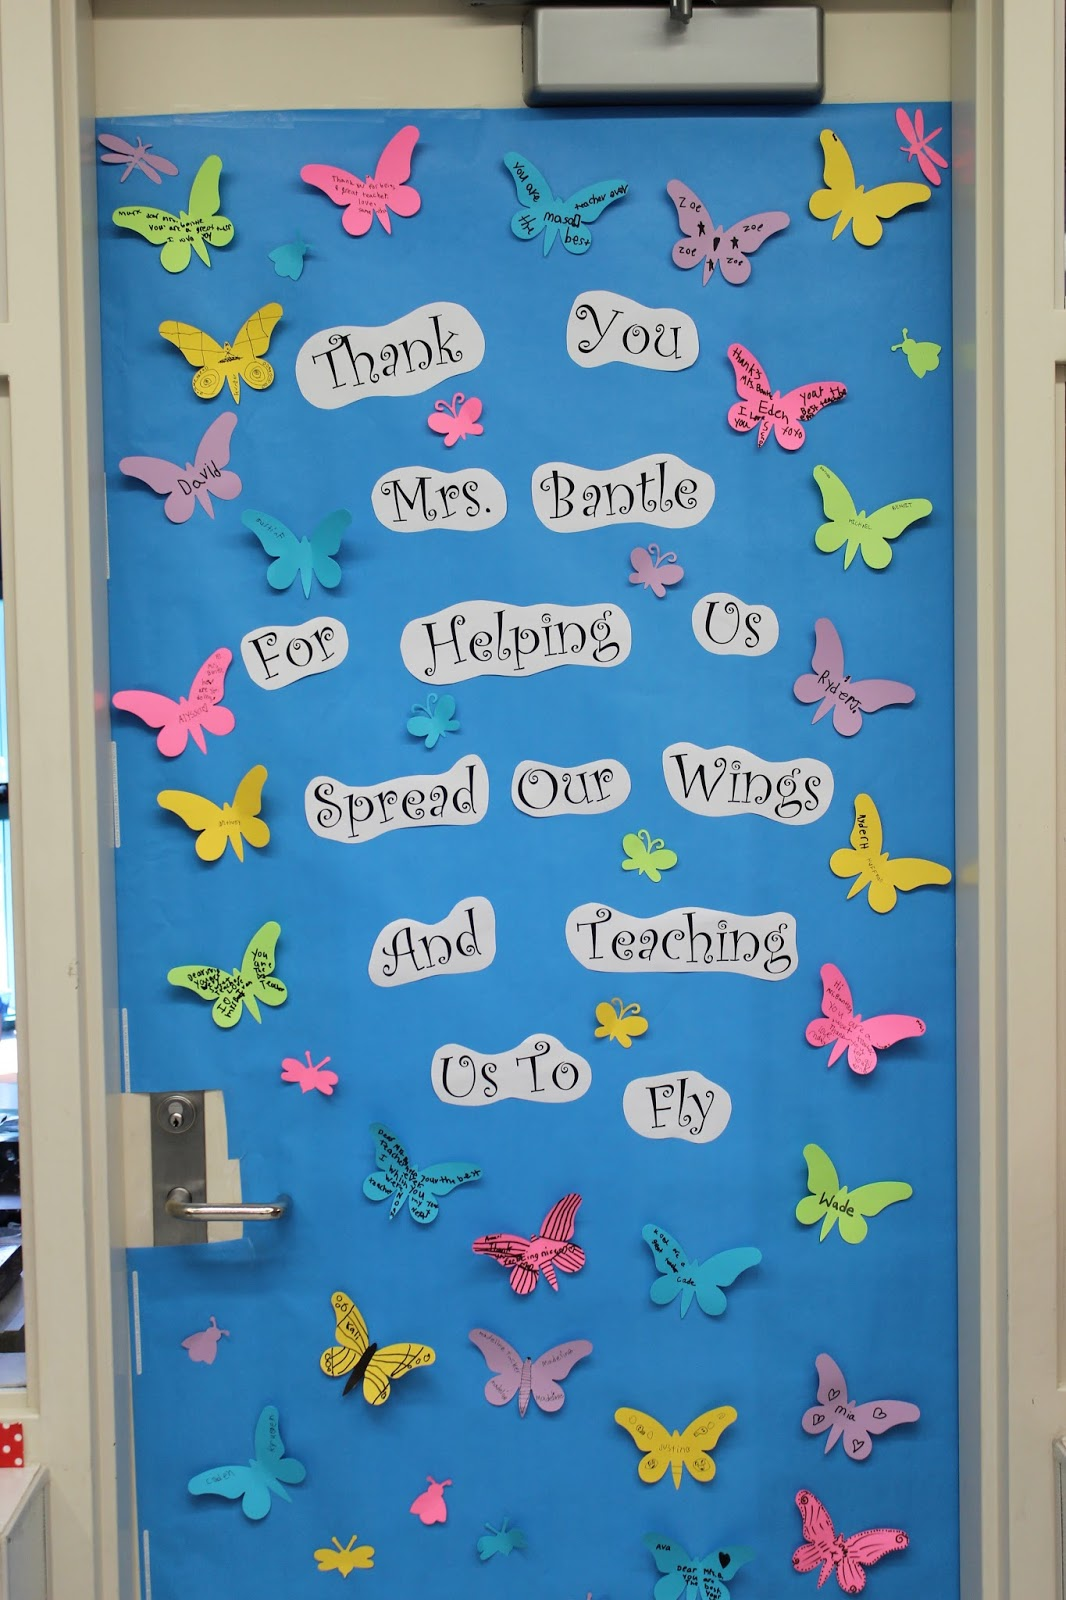 Classroom Decorating Ideas and Inspirations for Creativity